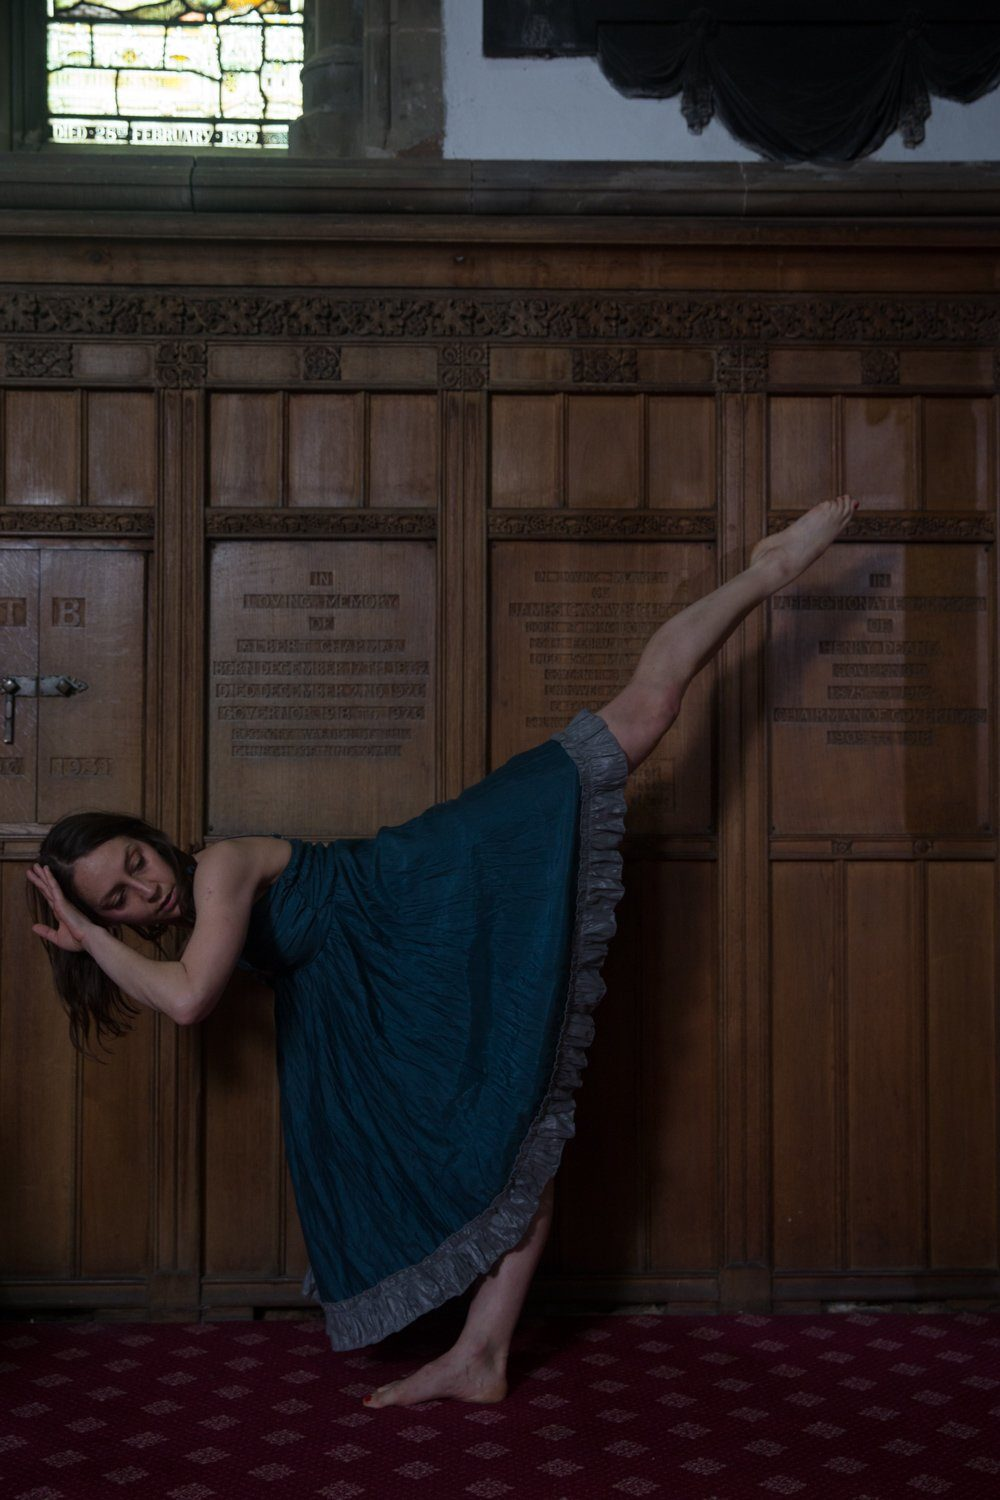 Giada dancing with her leg high in the air against a wooden wall